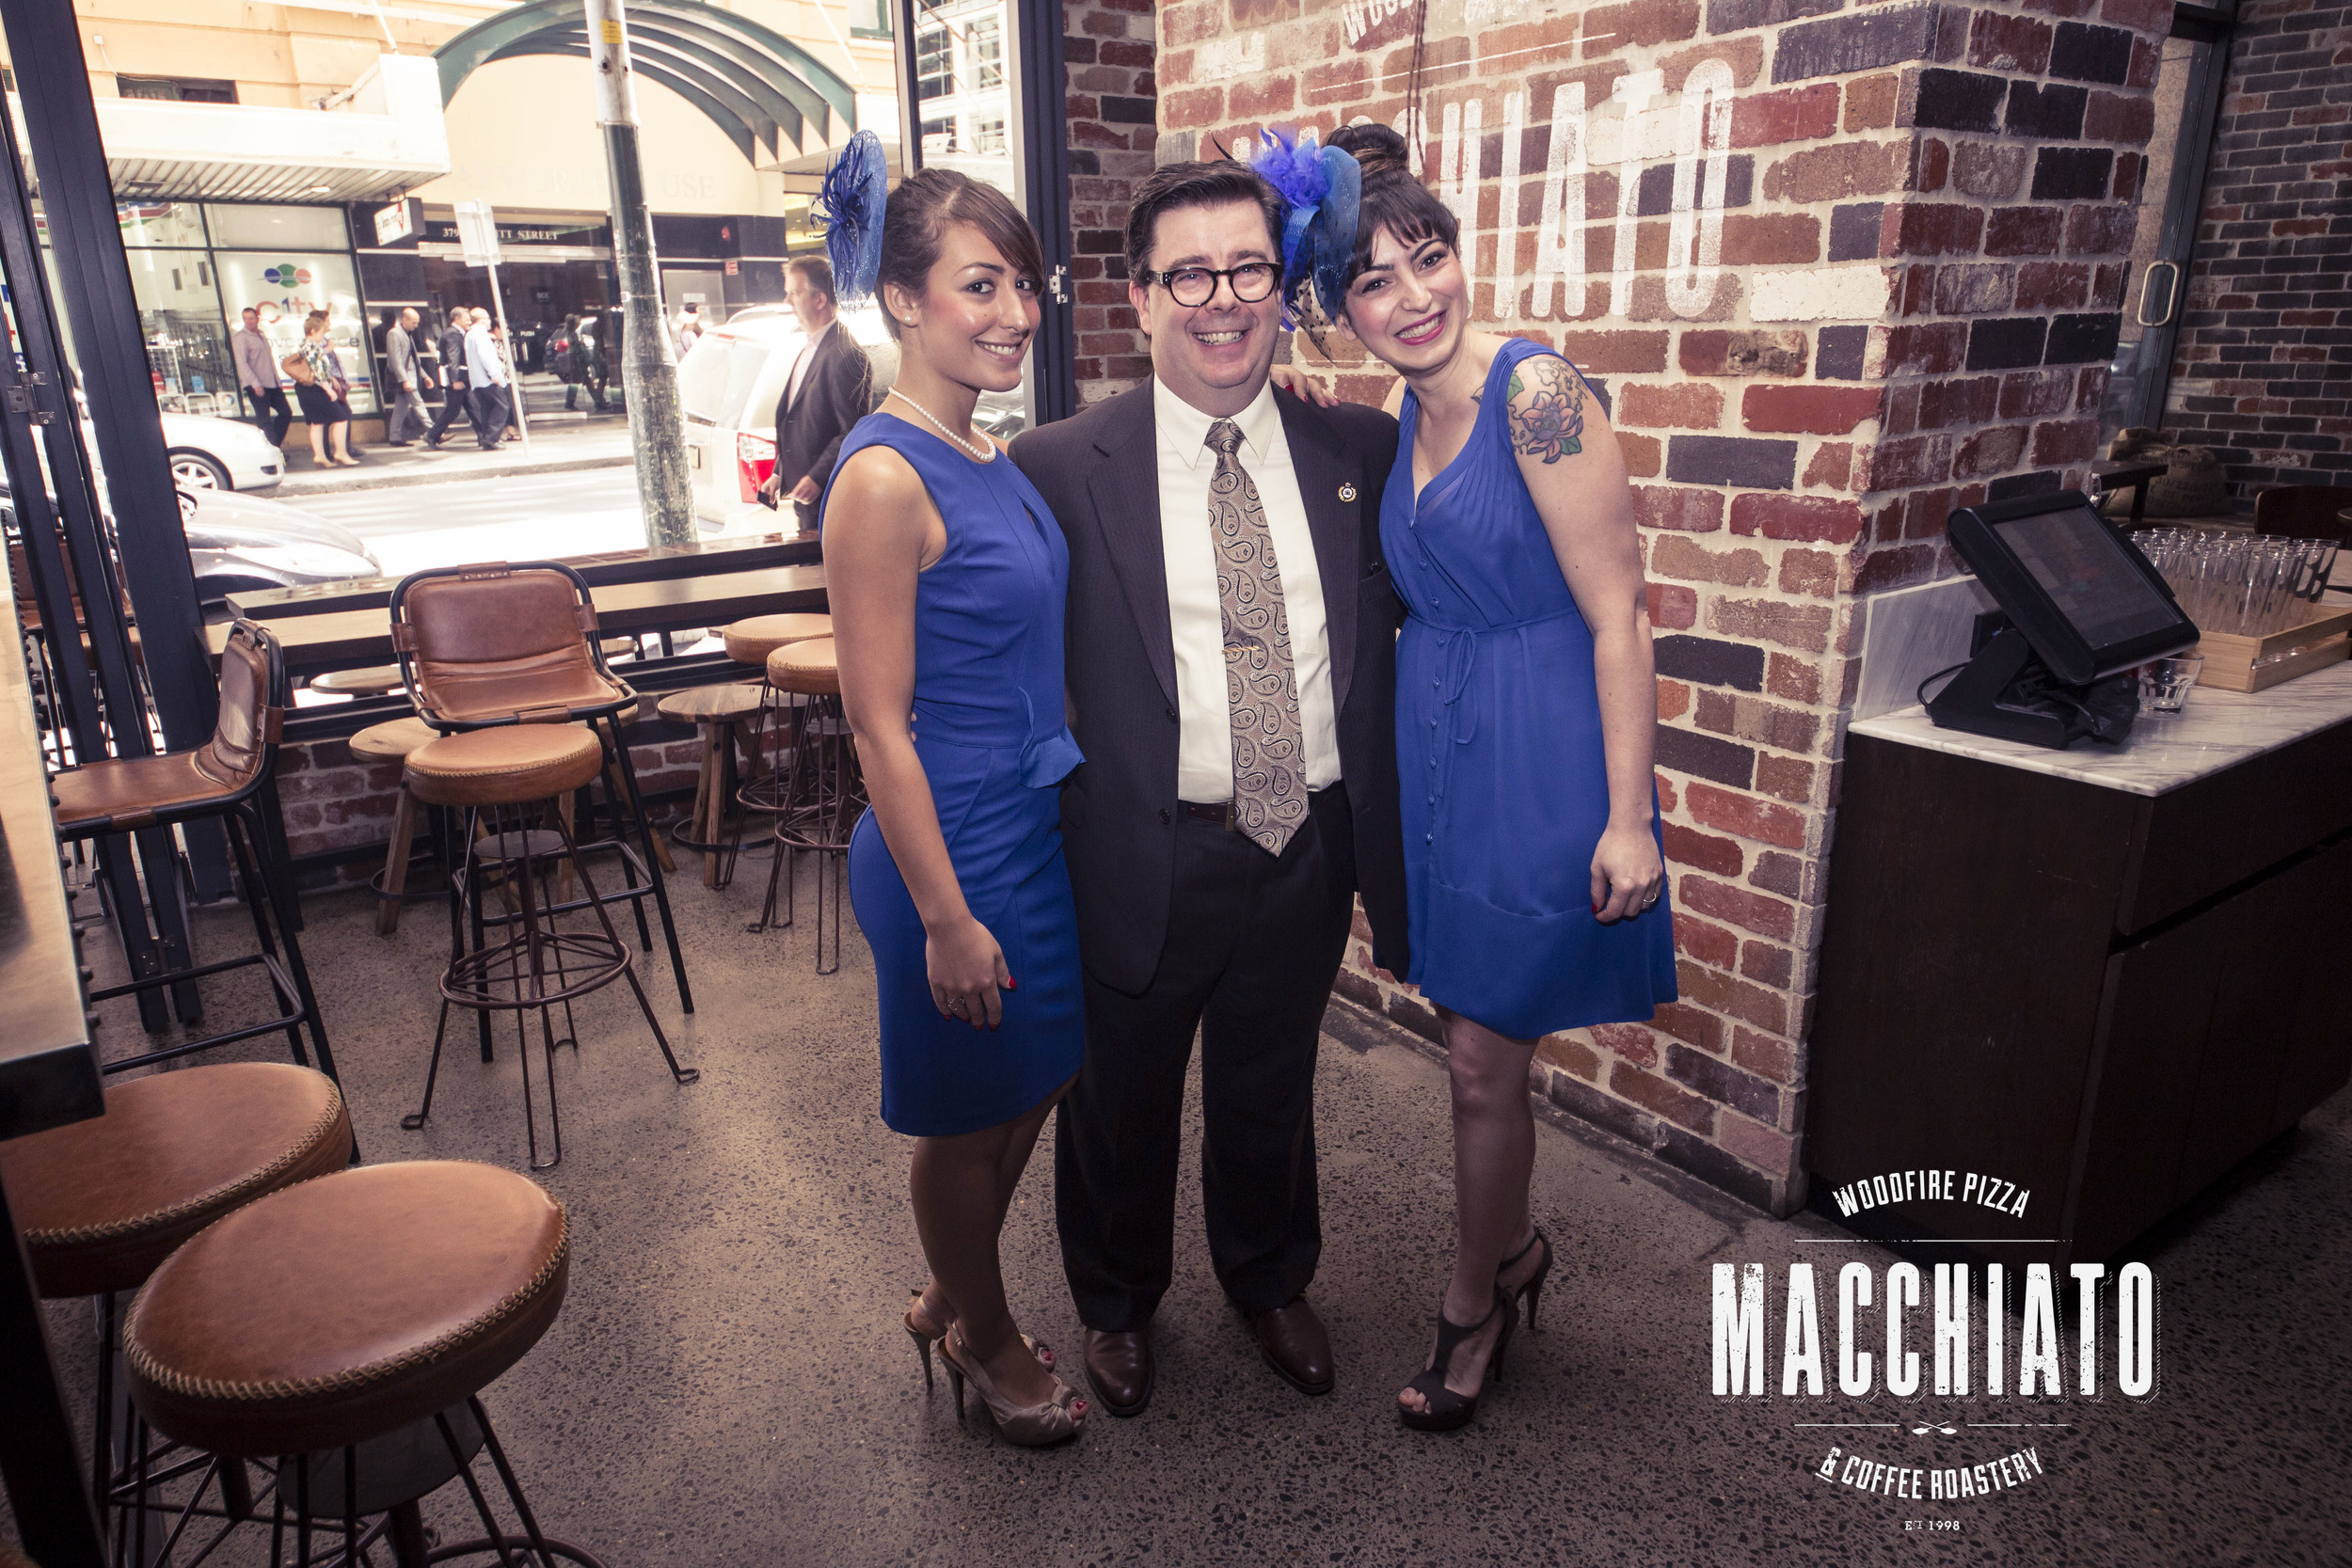 melbourne cup-1.jpg